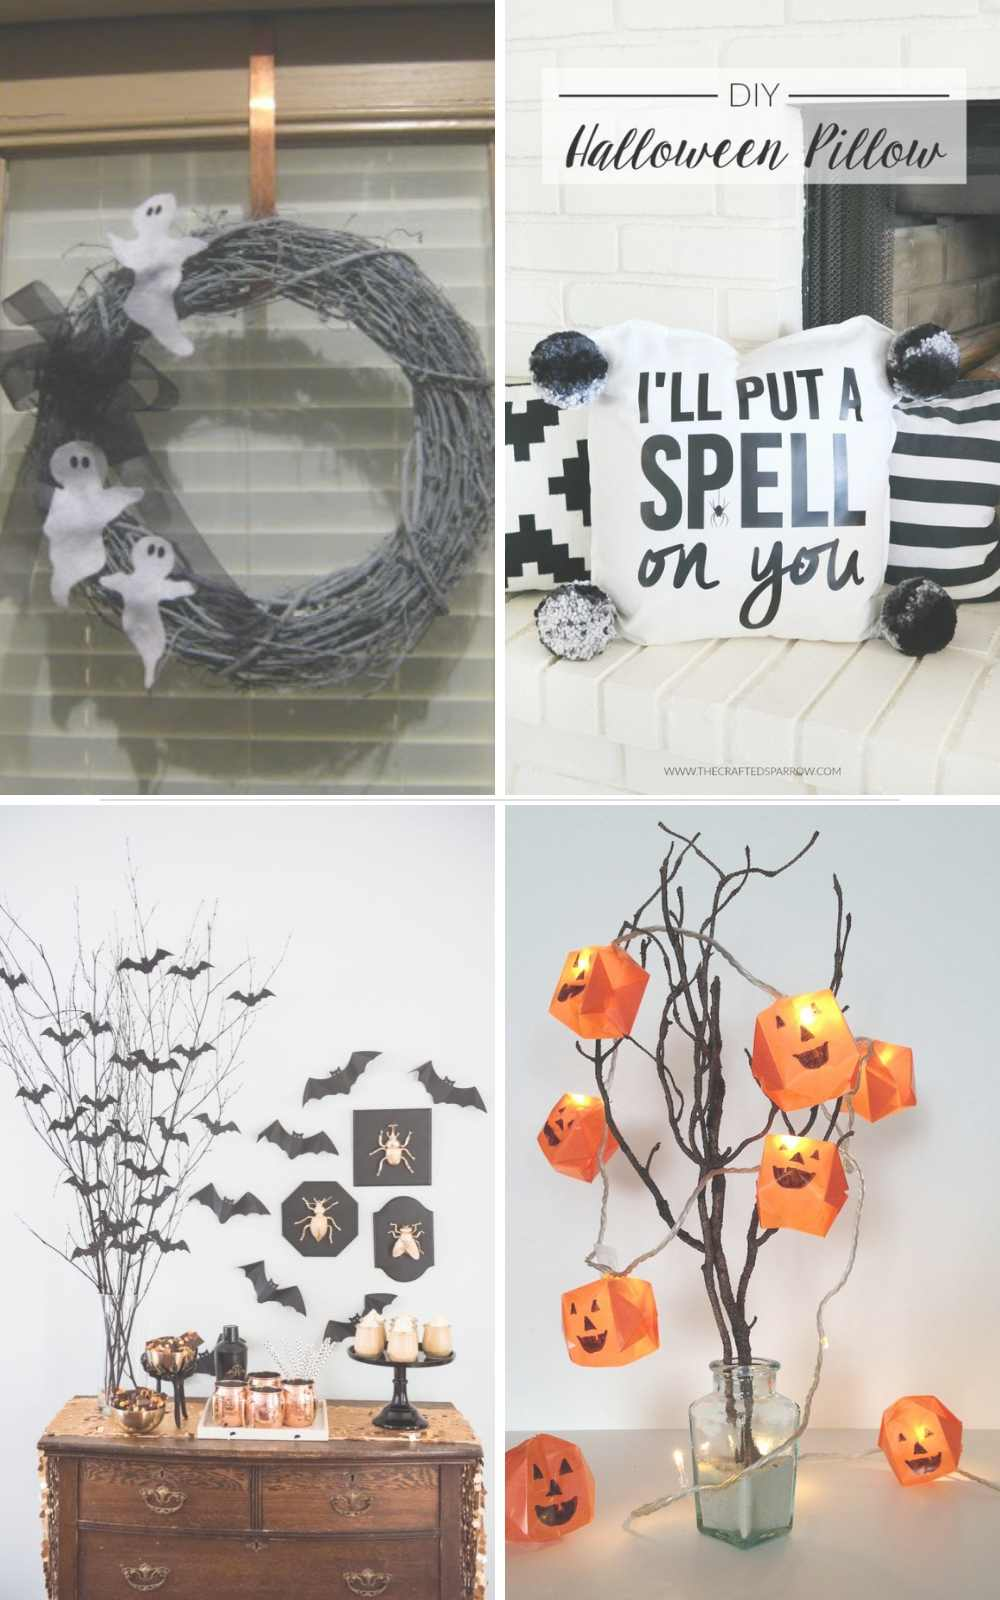 Cheap DIY halloween decorations #halloween #homedecor #decorations #diy